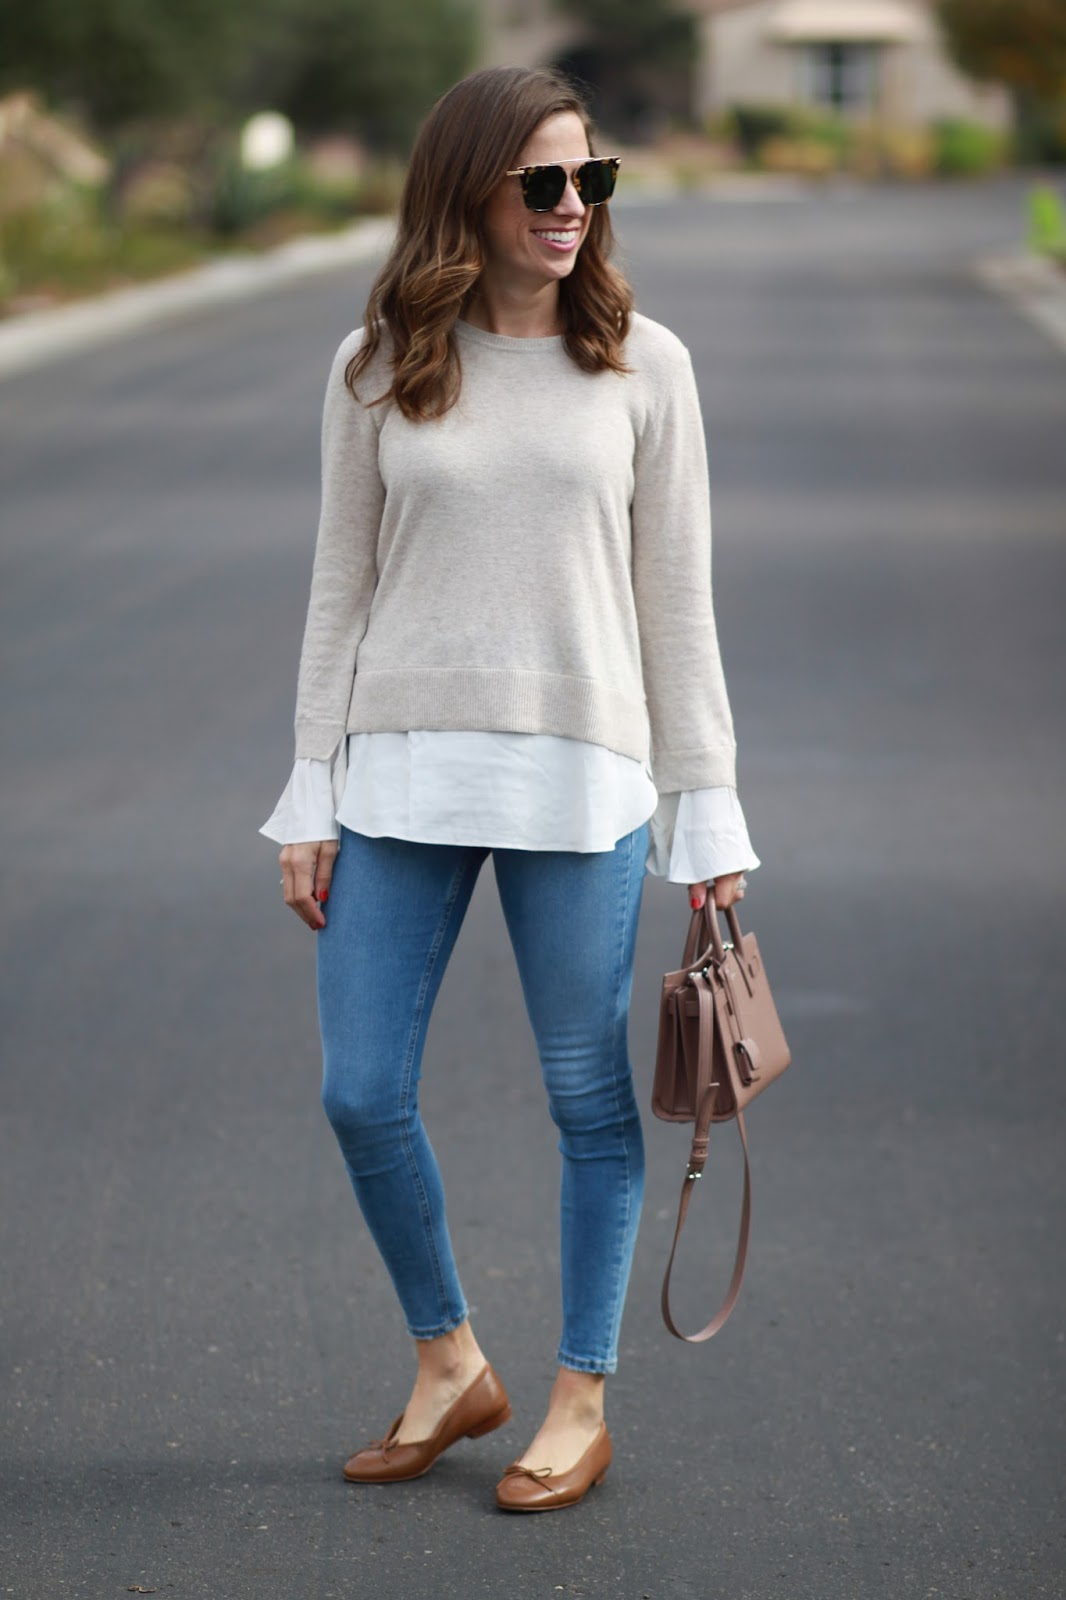 chanel flats and skinny jeans outfit